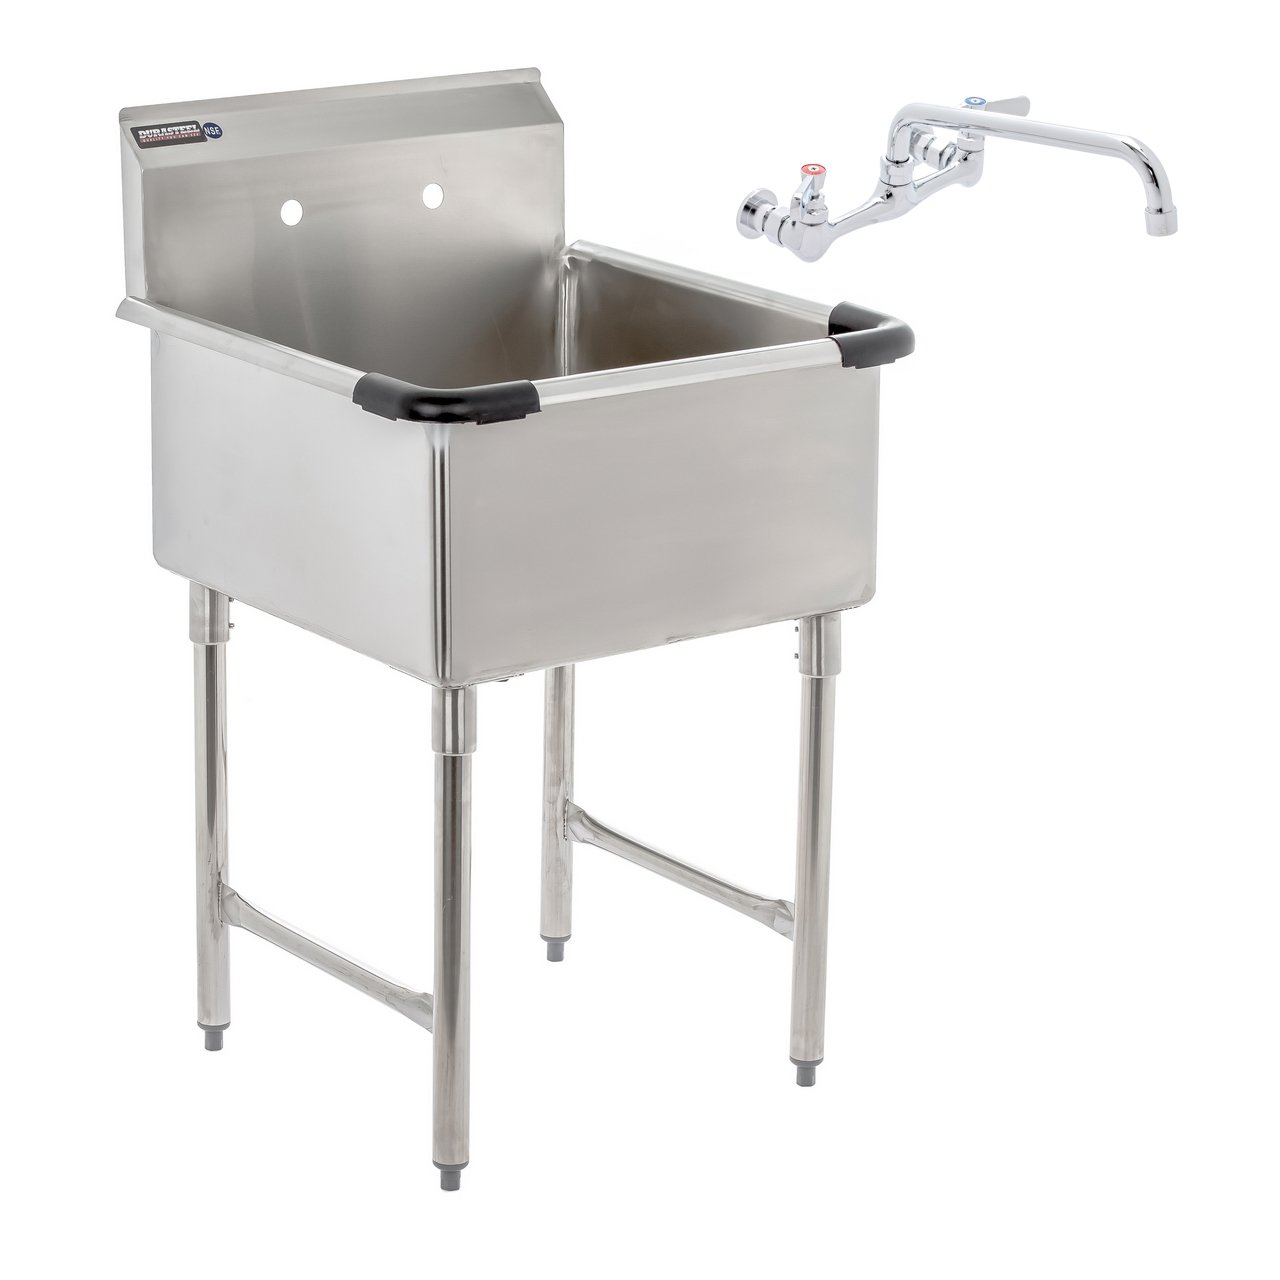 DuraSteel Stainless Steel Utility 1 Compartment Preperation Sink 24''x 24'' SH24241P NSF by Apex